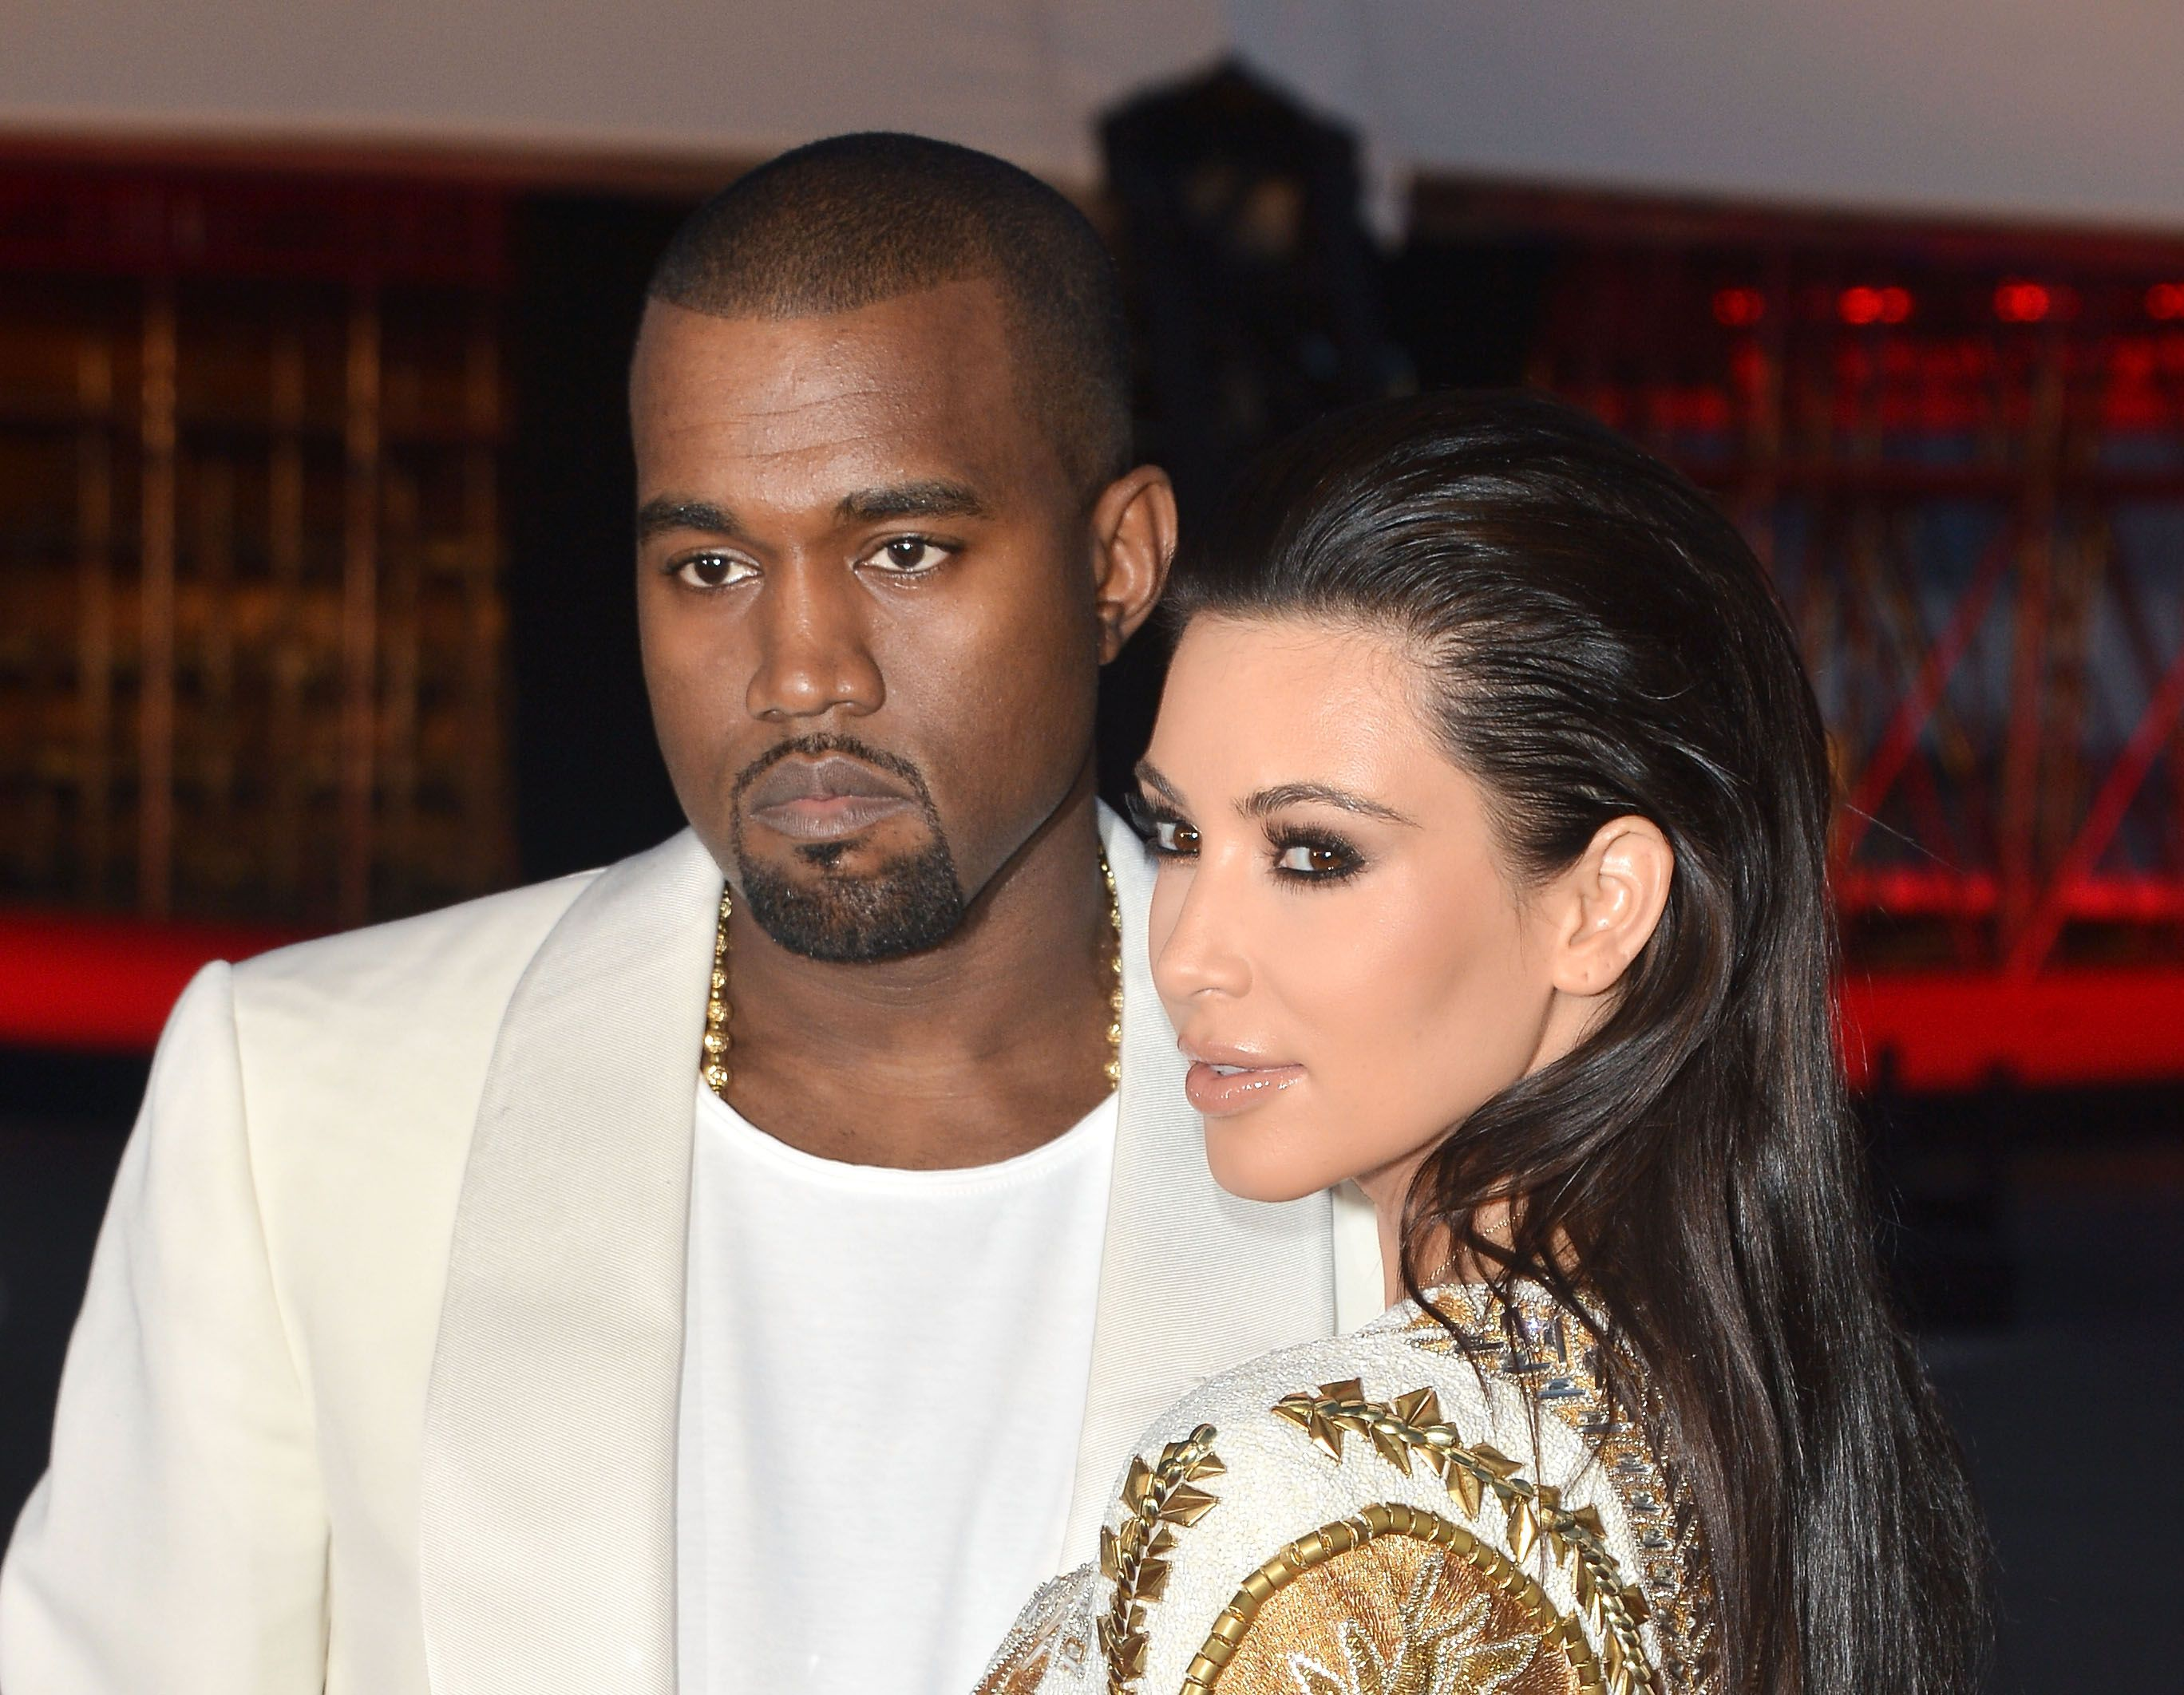 """Kanye West and Kim Kardashian at the premiere of """"Cruel Summer"""" in 2012 in Cannes 